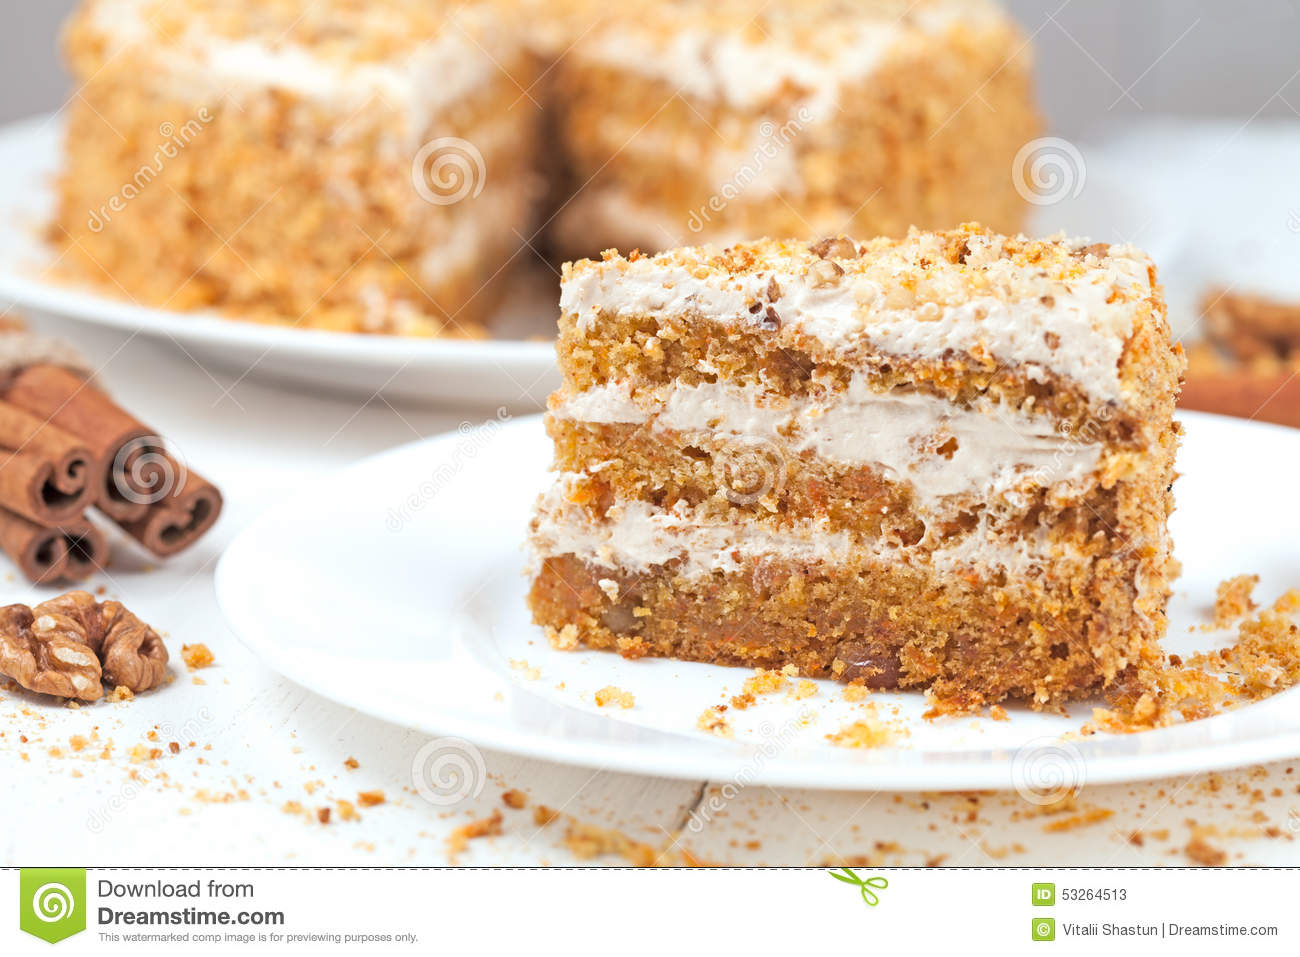 Calories In A Slice Of Cake With Icing